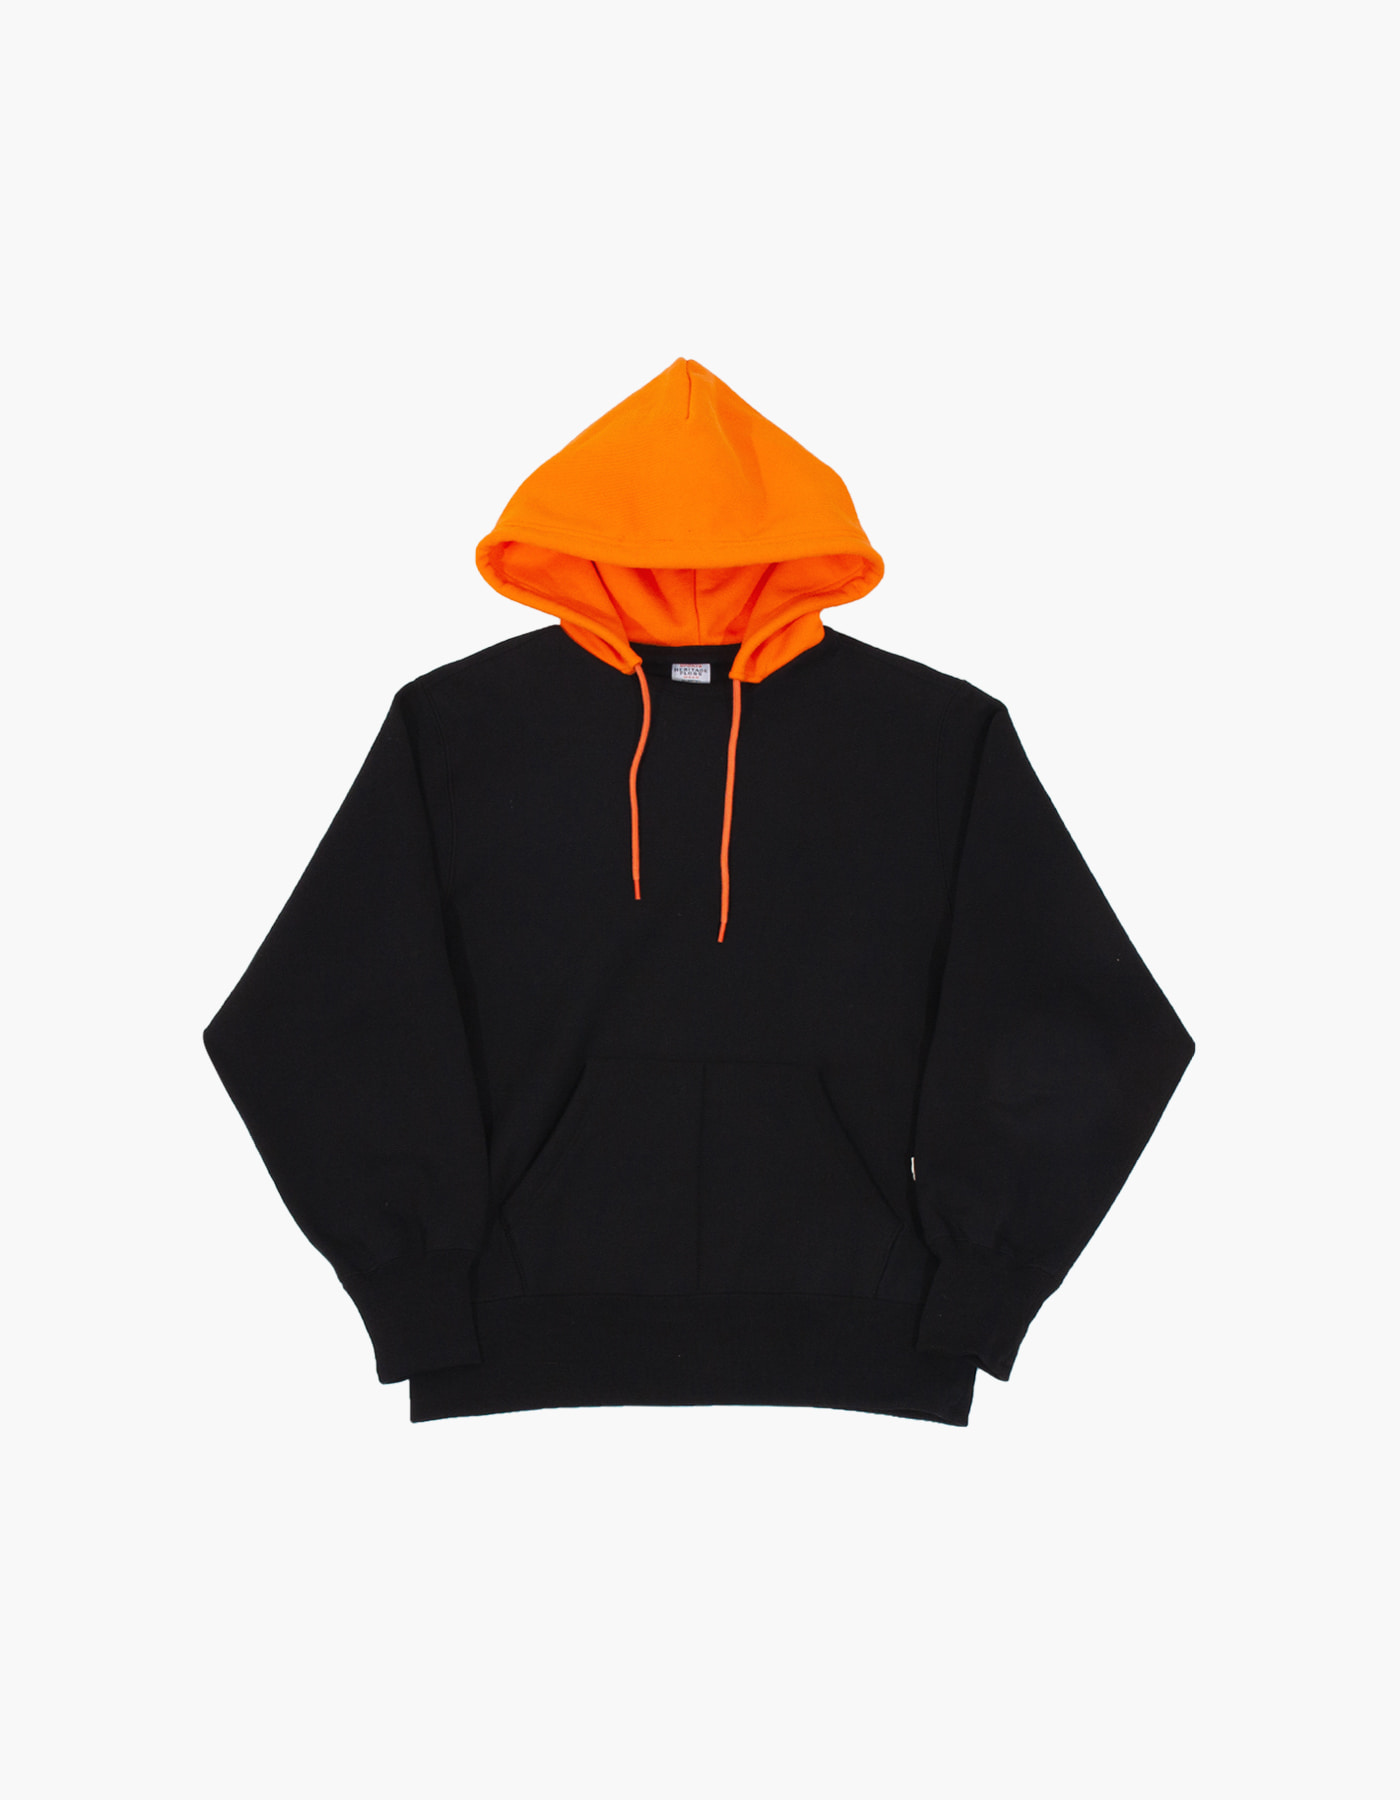 ACS BLOCKED HOODIE / BLACK-ORANGE